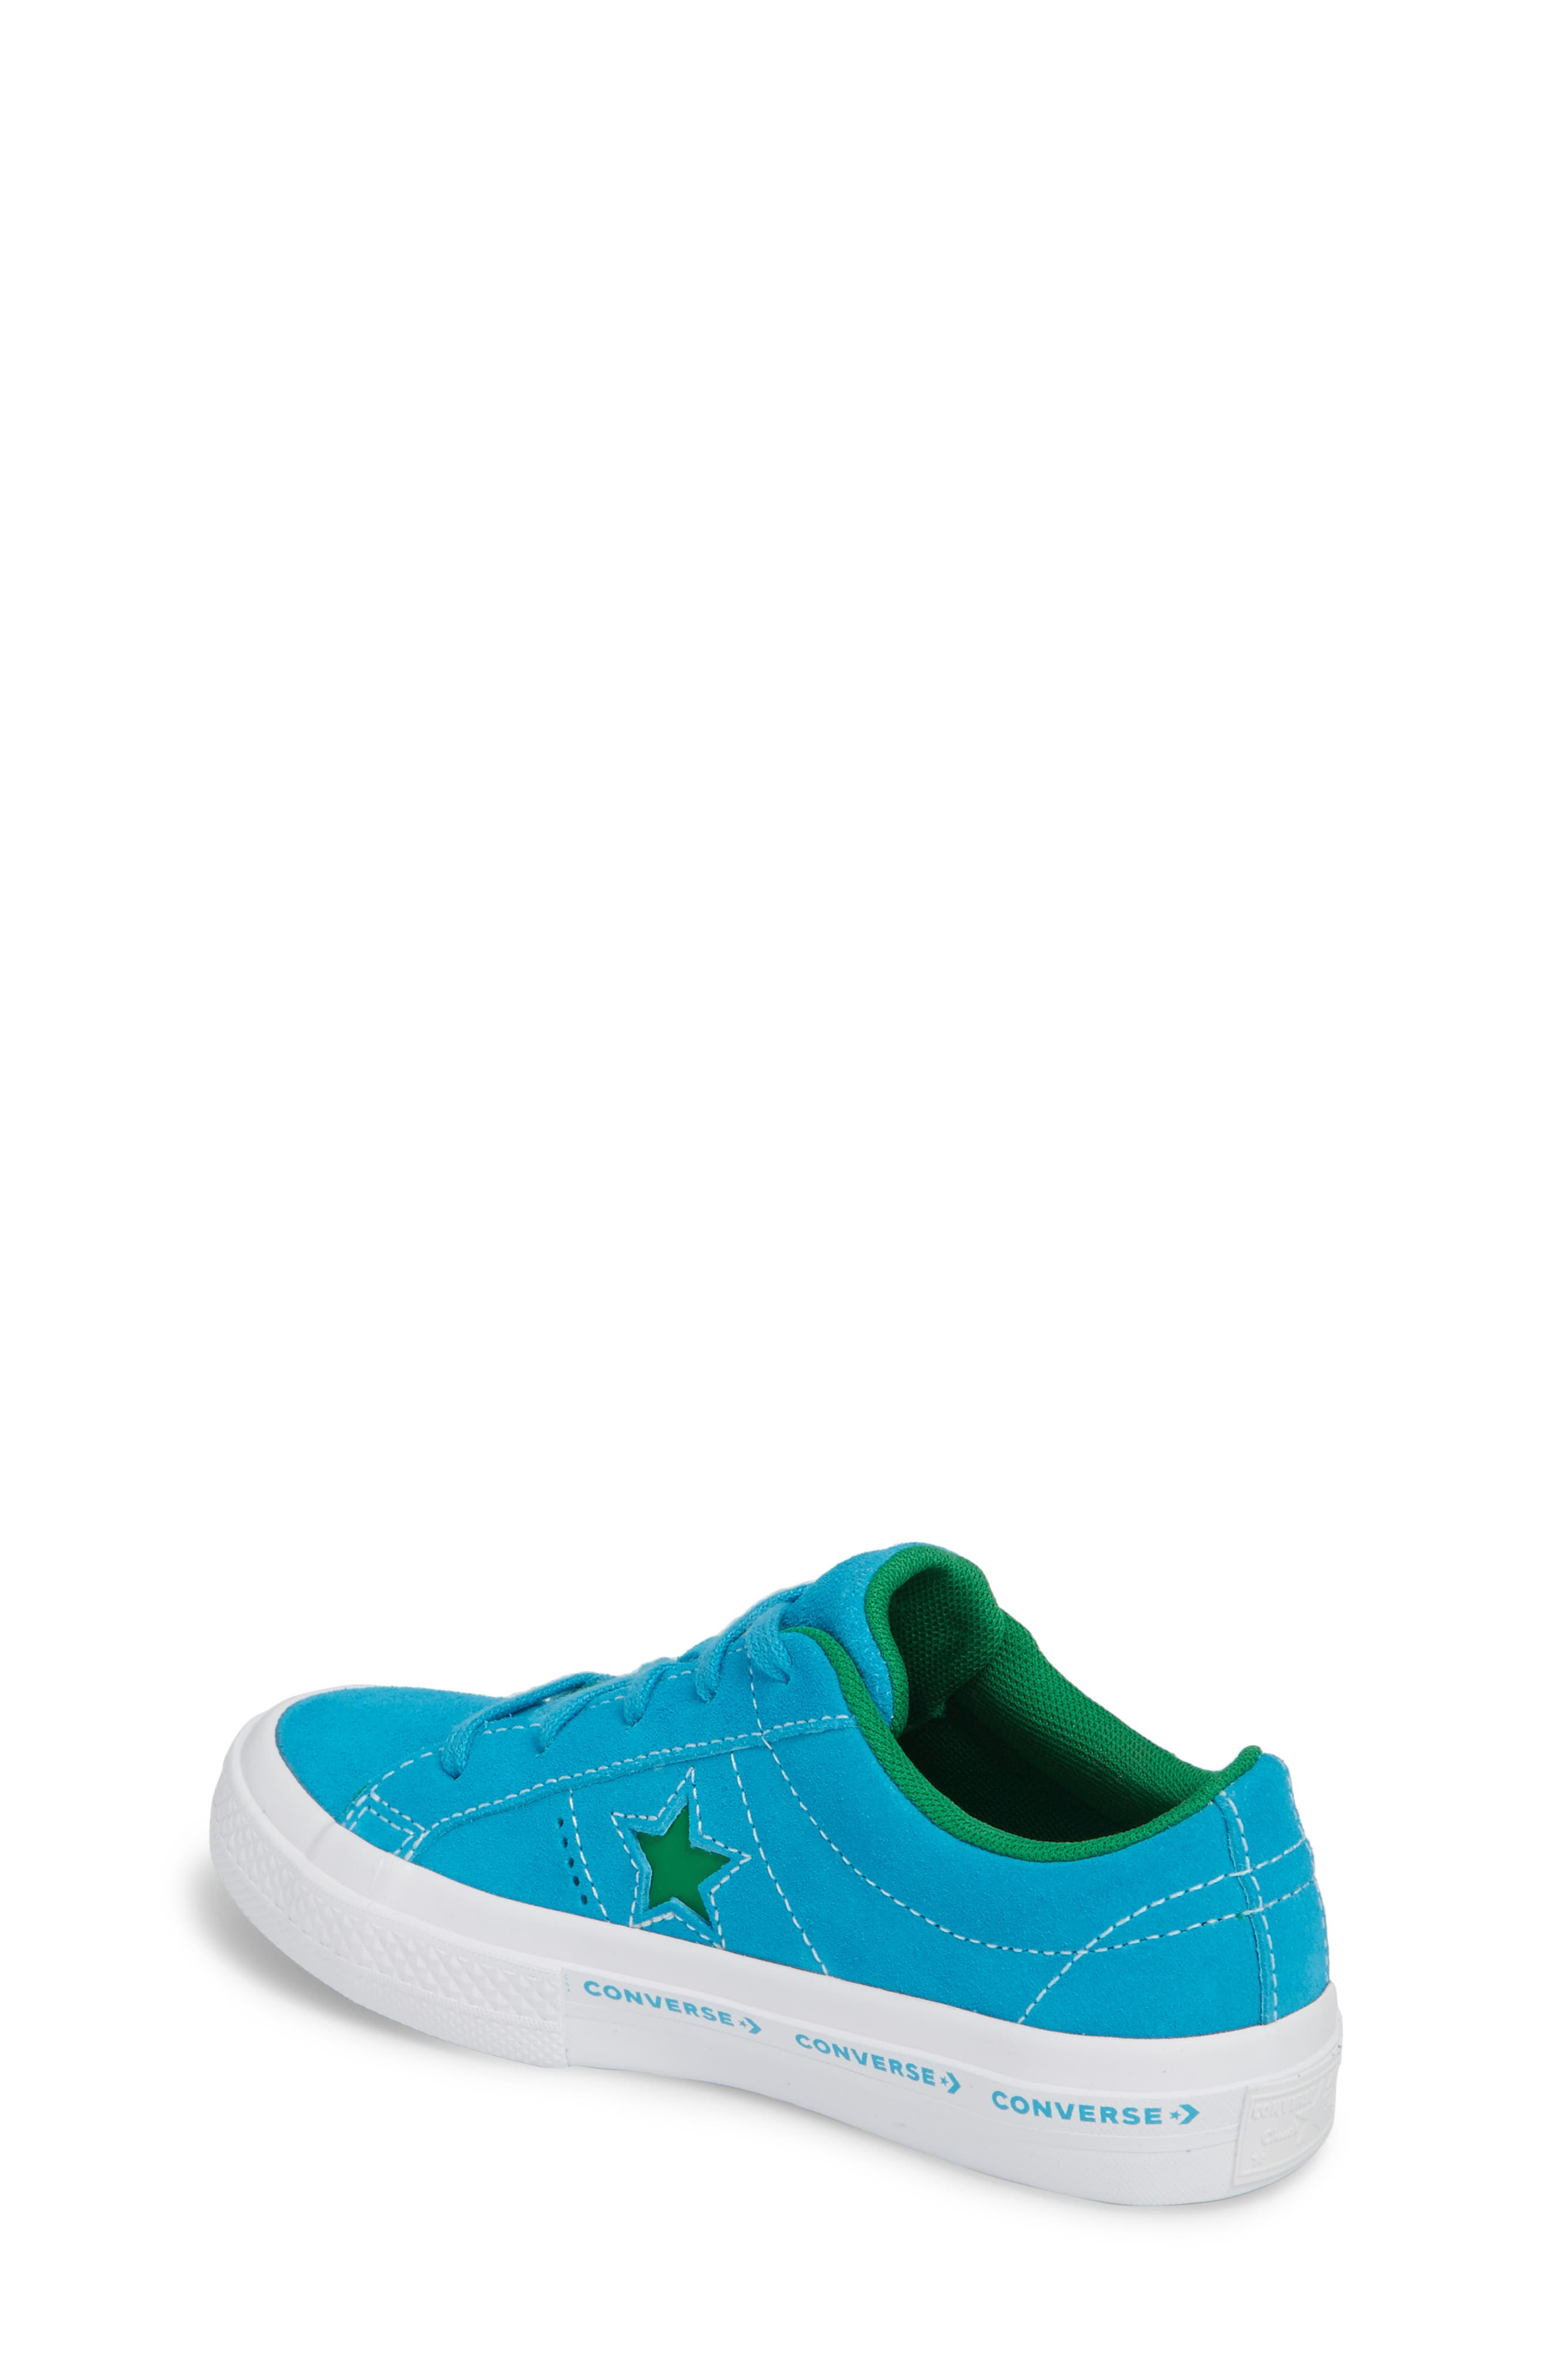 Chuck Taylor<sup>®</sup> All Star<sup>®</sup> One Star Leather Platform Sneaker,                             Alternate thumbnail 2, color,                             486